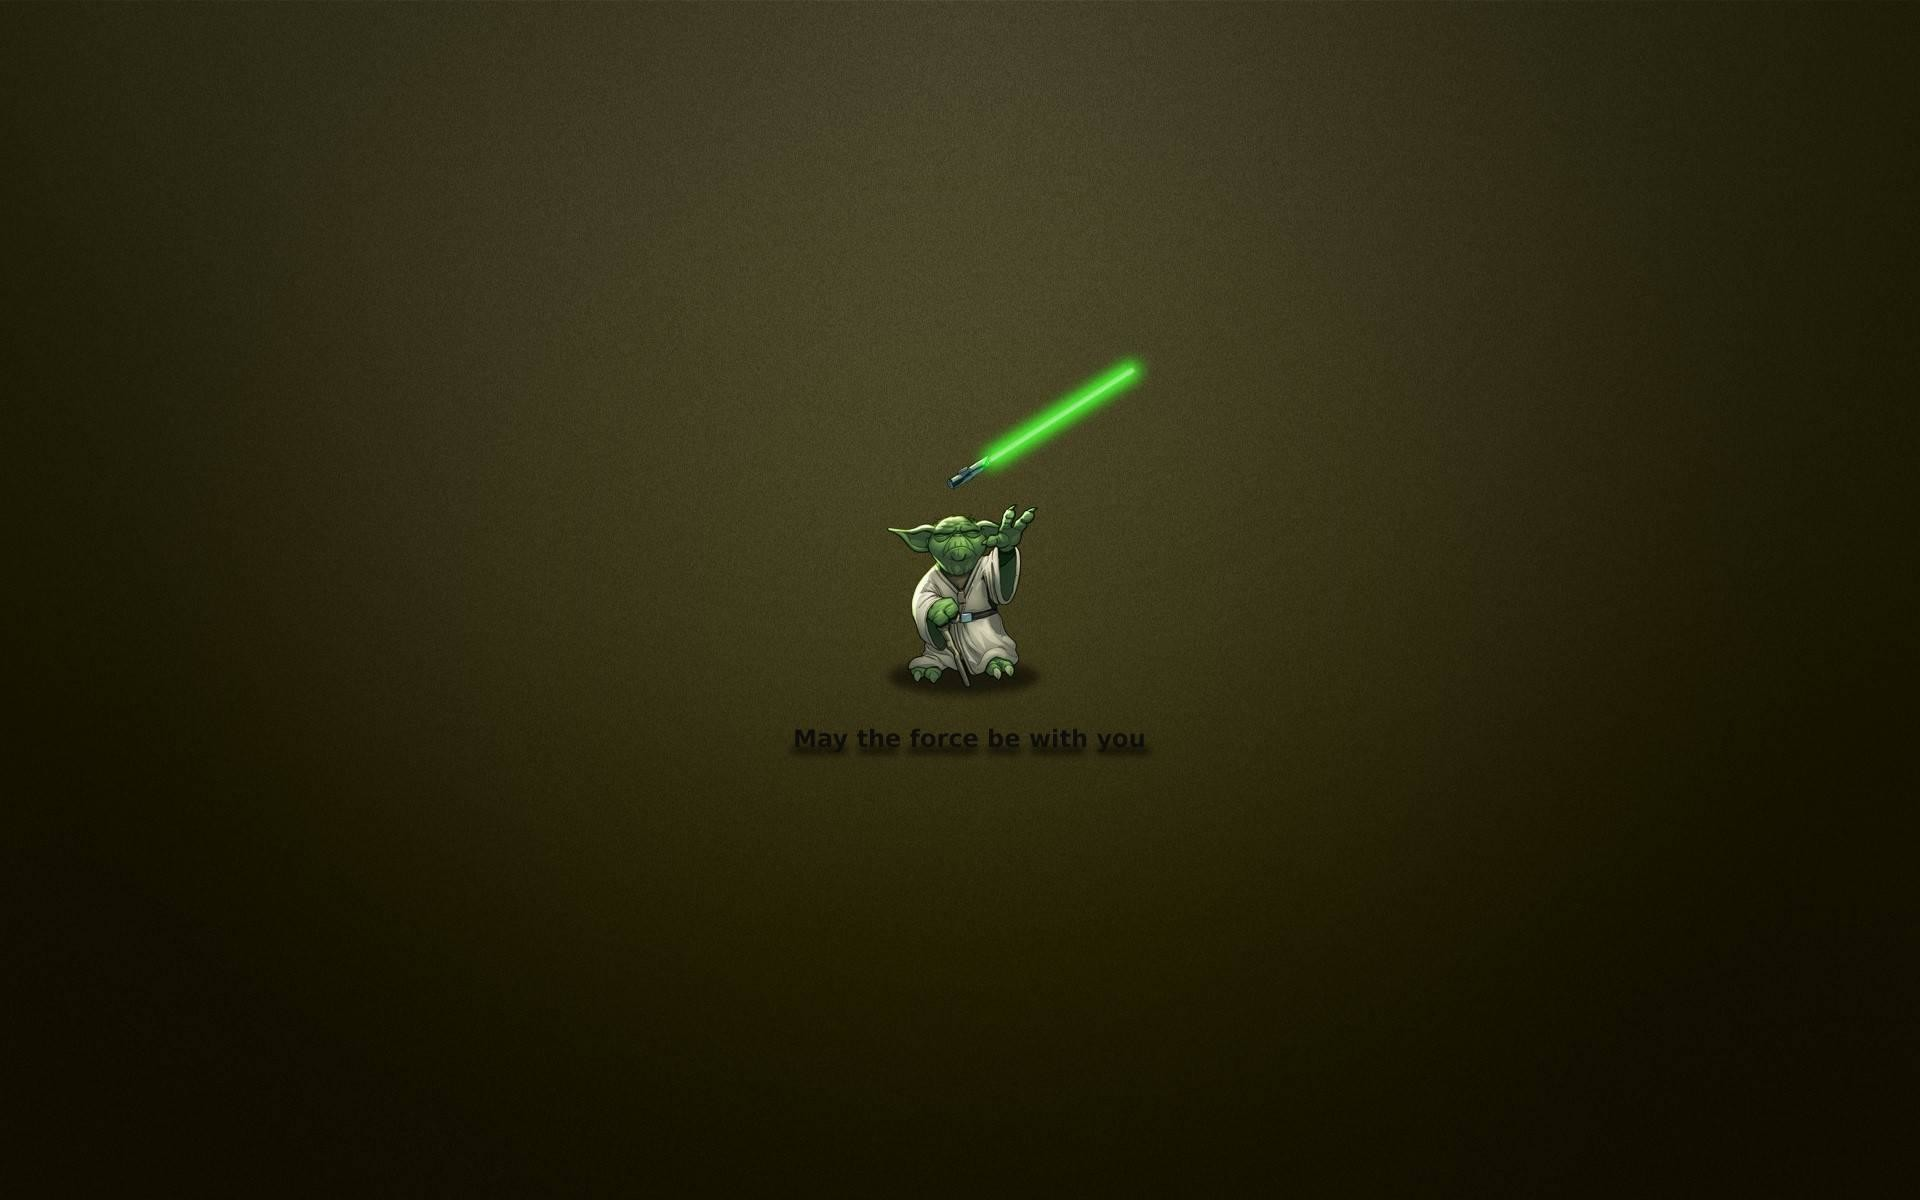 movies-Yoda-HD-Desktop-and-Mobile-Backgrounds-wallpaper-